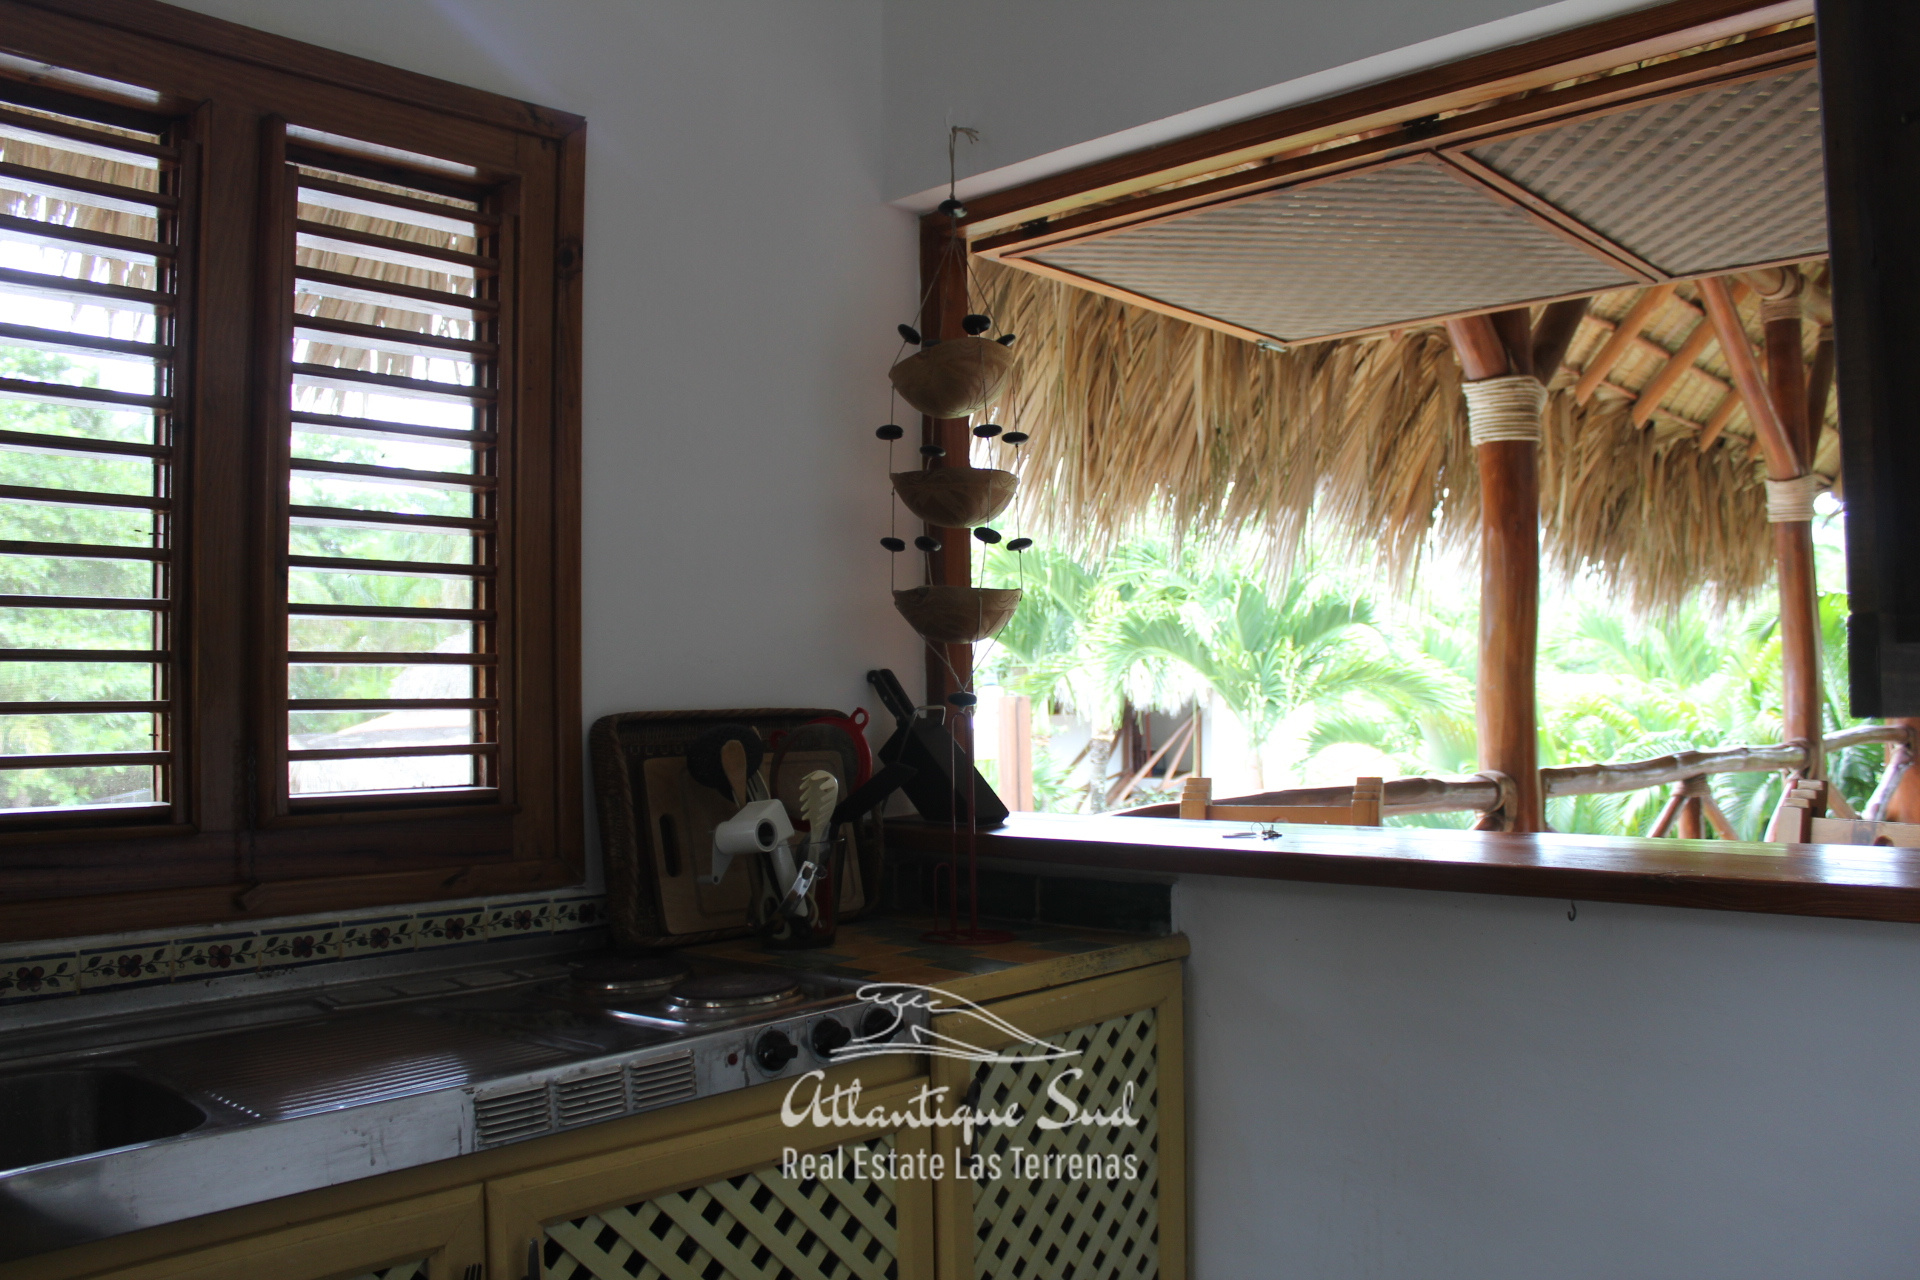 For-sale-Apartment-in-beachfront-community-with-mezzanine-Las-Terrenas_4790 (1).JPG